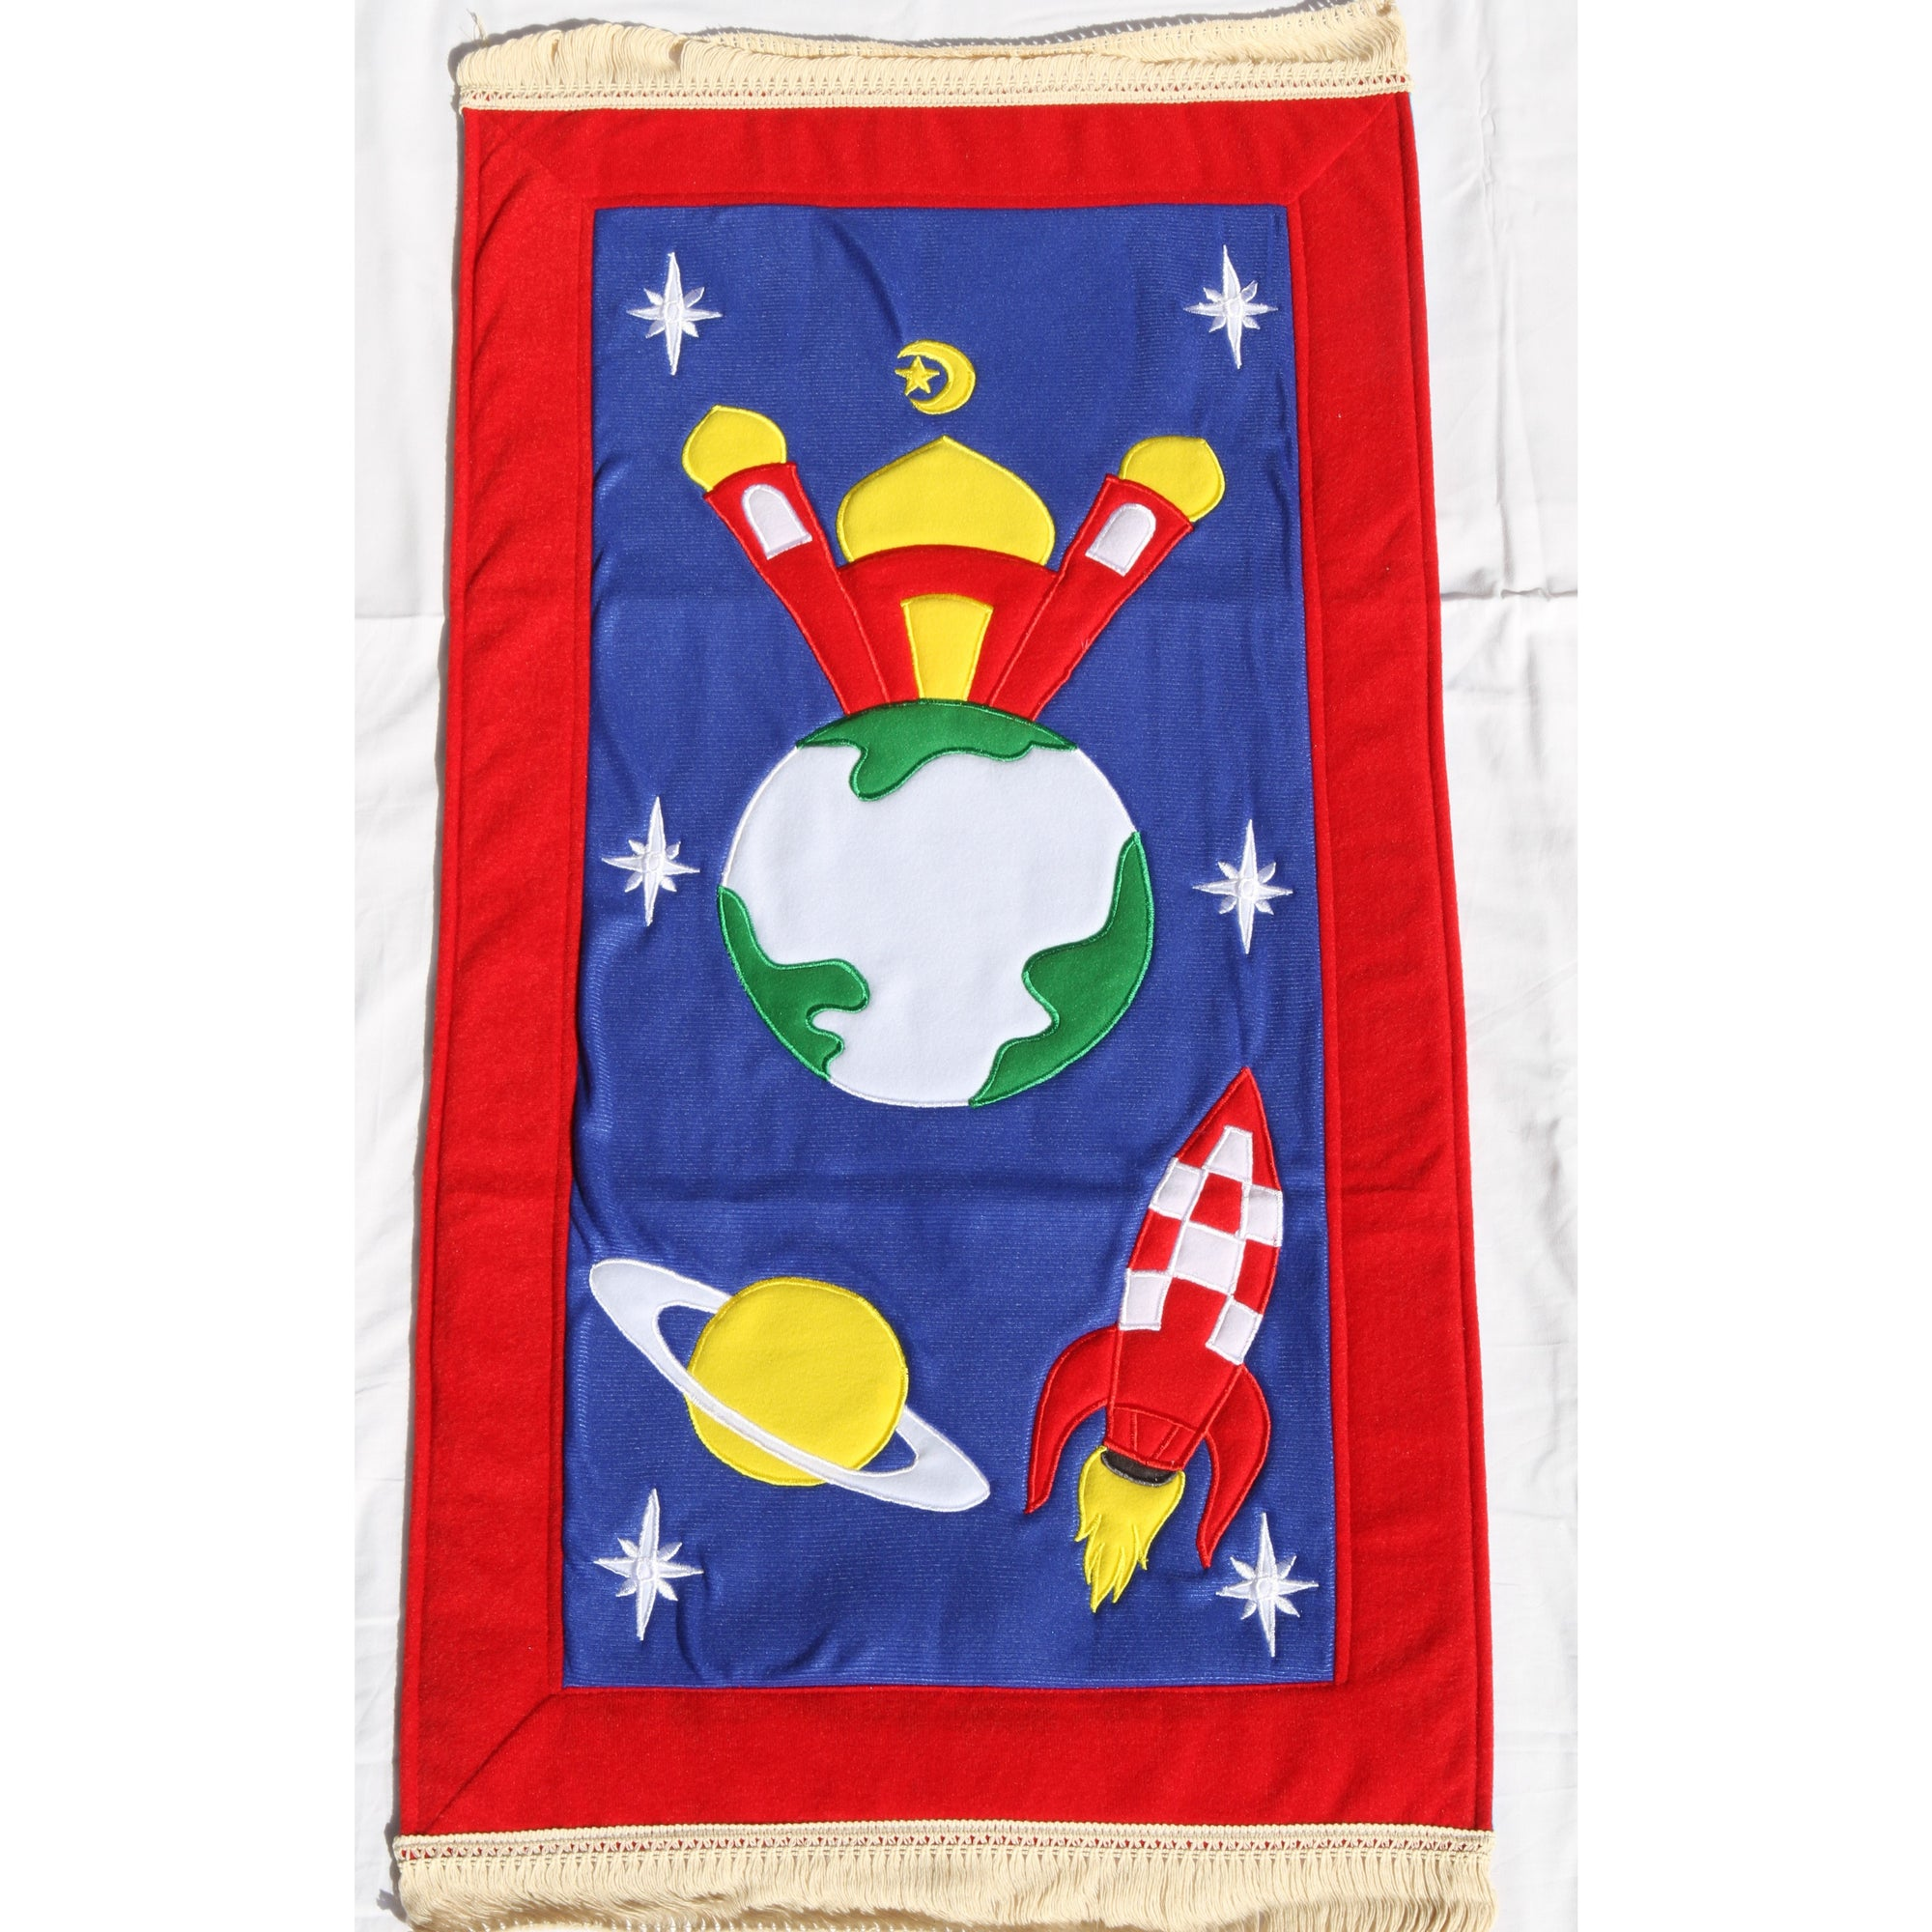 Handmade Kids Prayer Mat - Red Border : Rocket